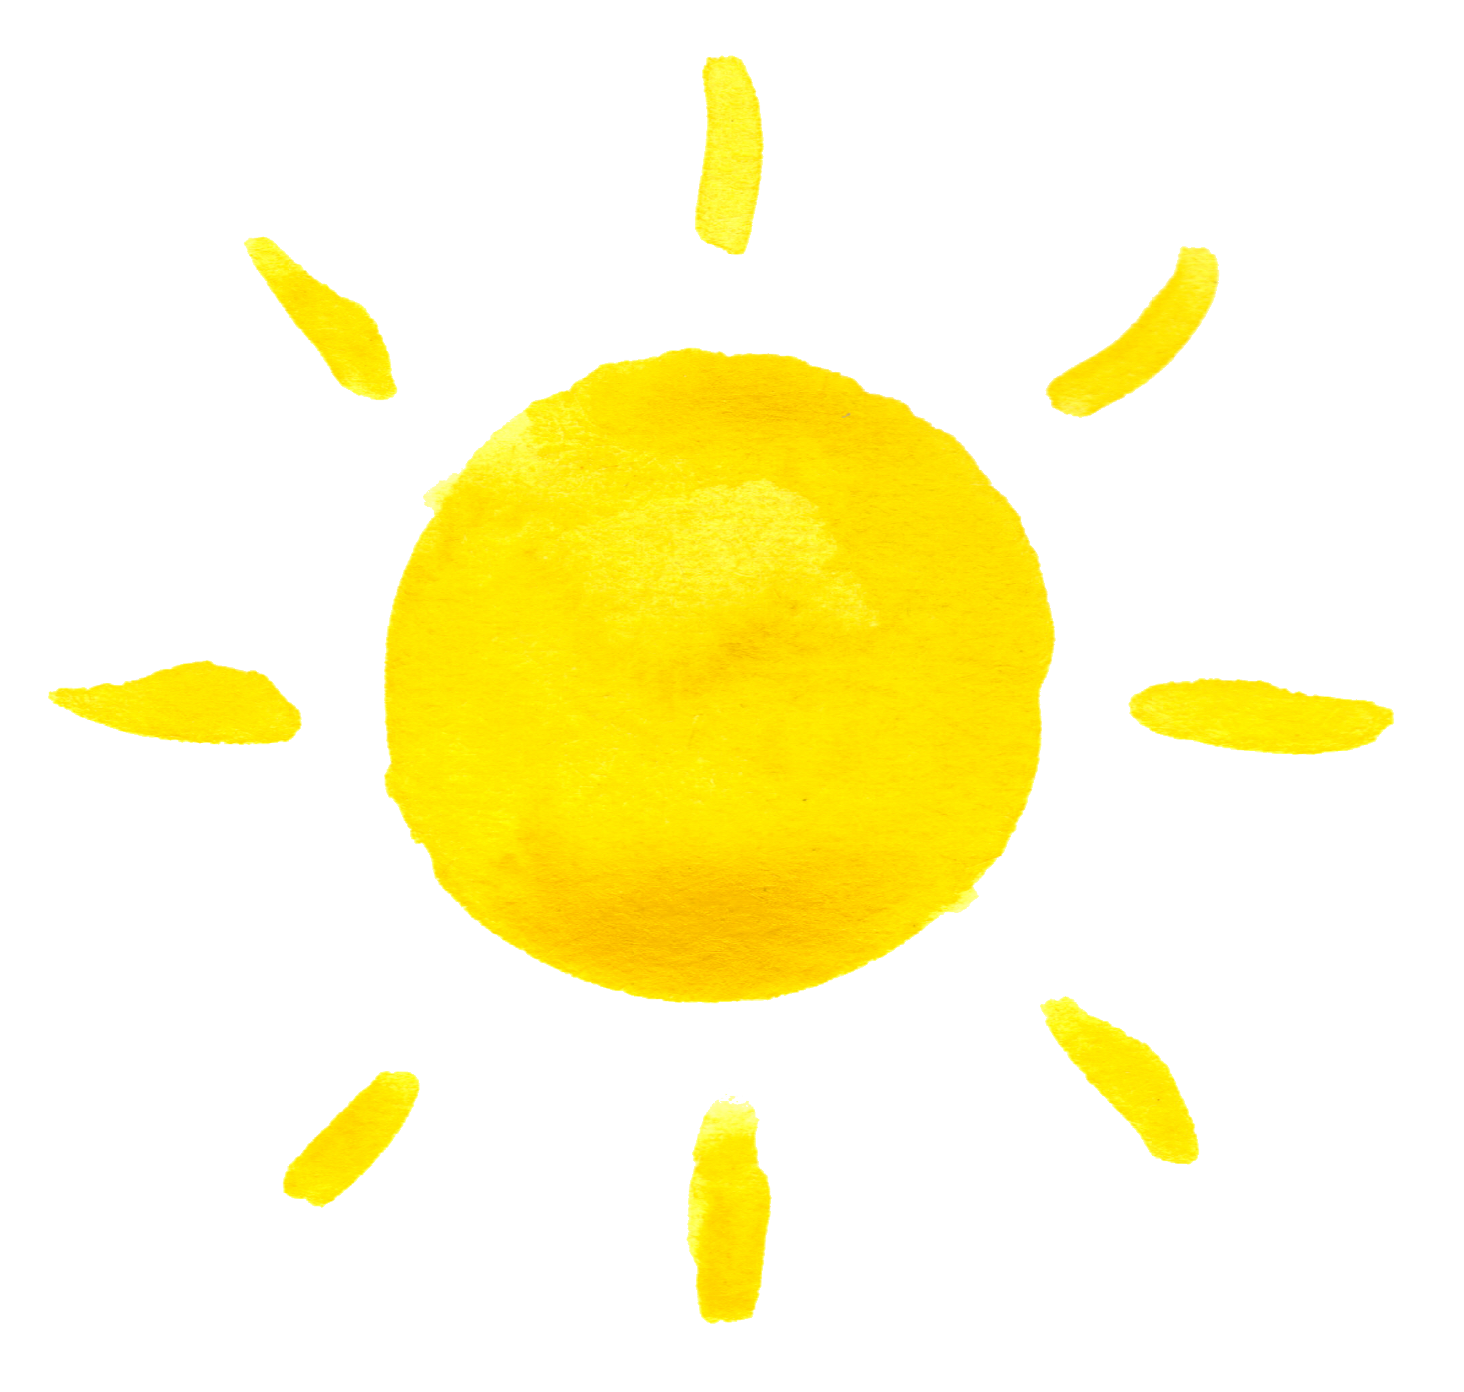 The Image Of The Radiant Sun Yellow